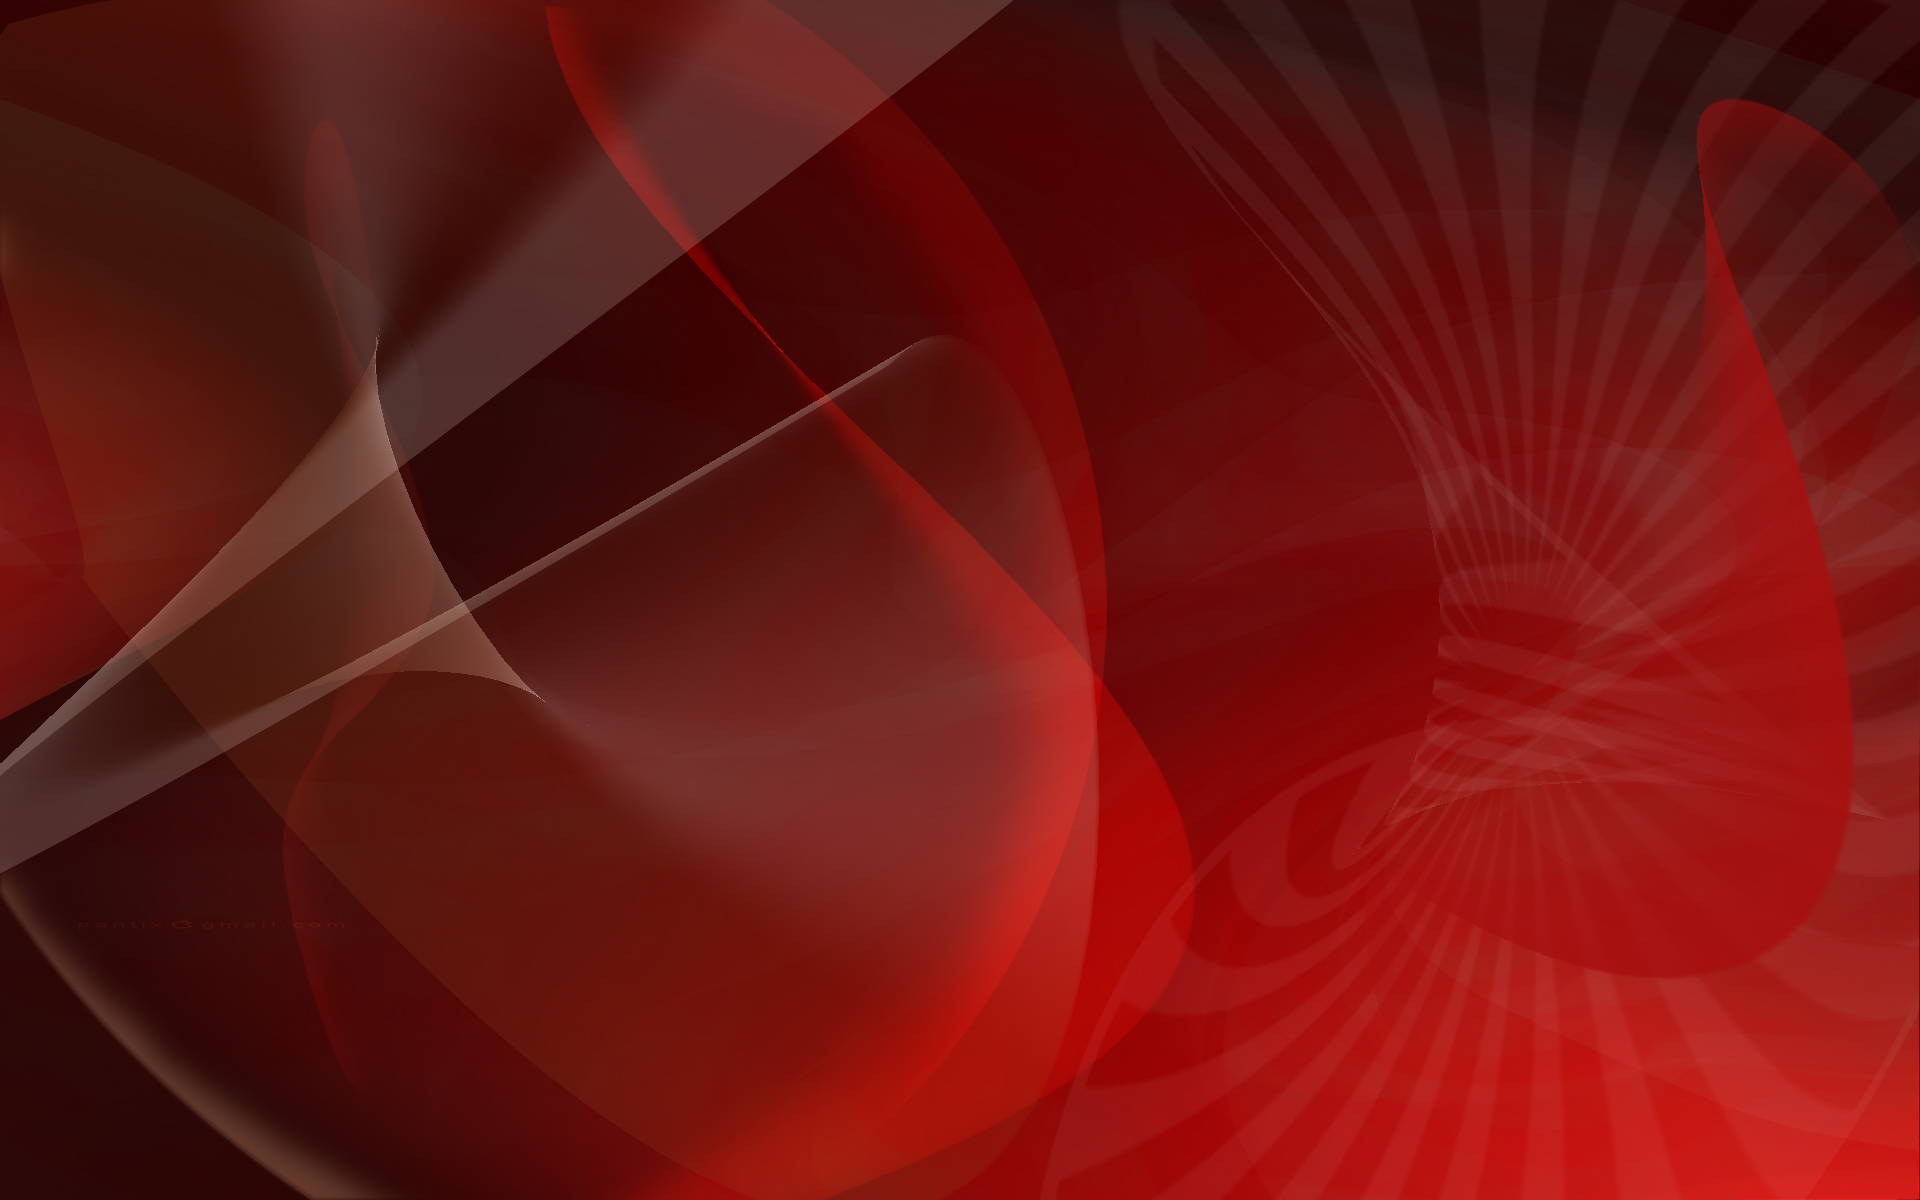 Red Abstract wallpaper - 688764